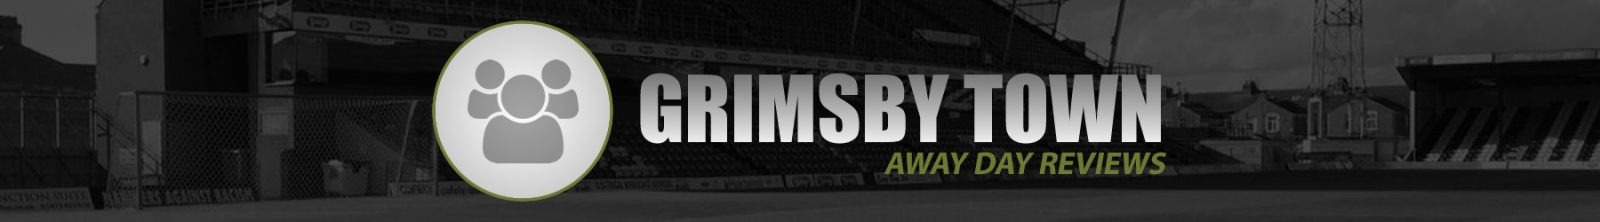 Review Grimsby Town